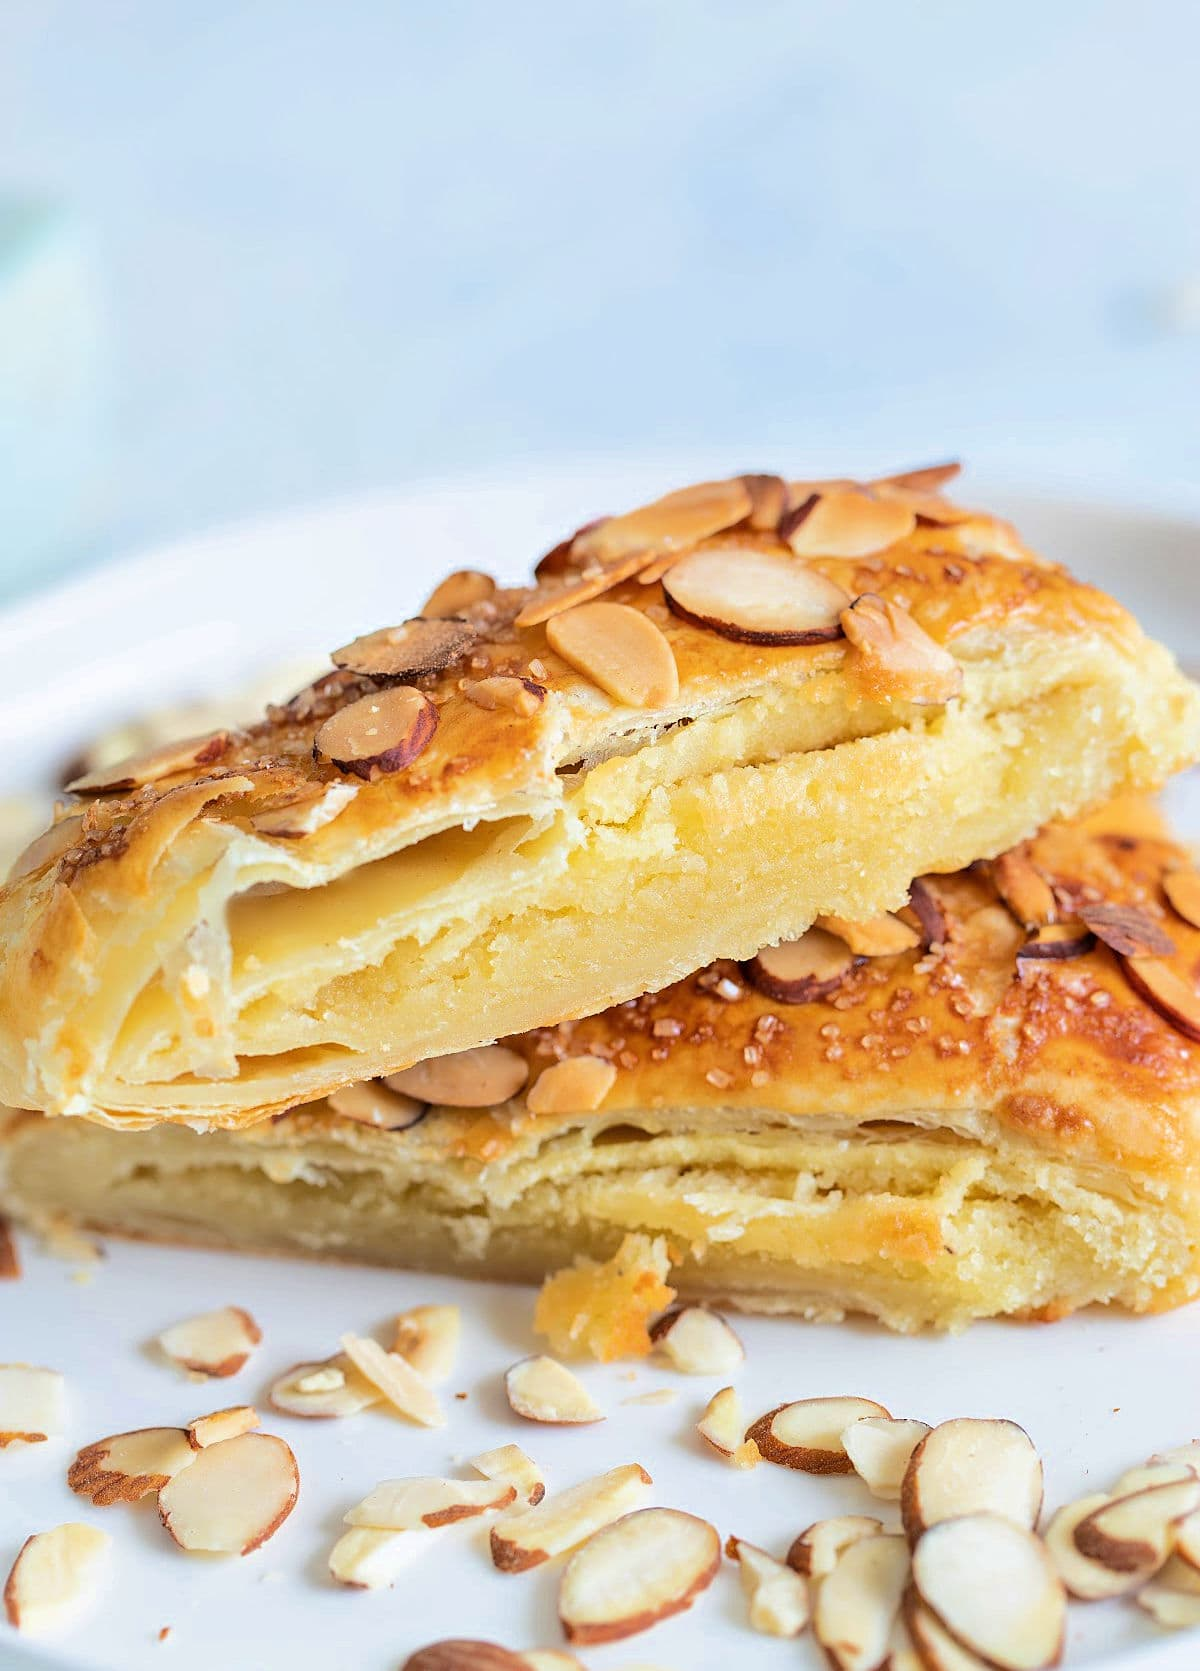 two pieces of Bear Claw pastry on white plate garnished with sliced almonds white background with almond bear claw